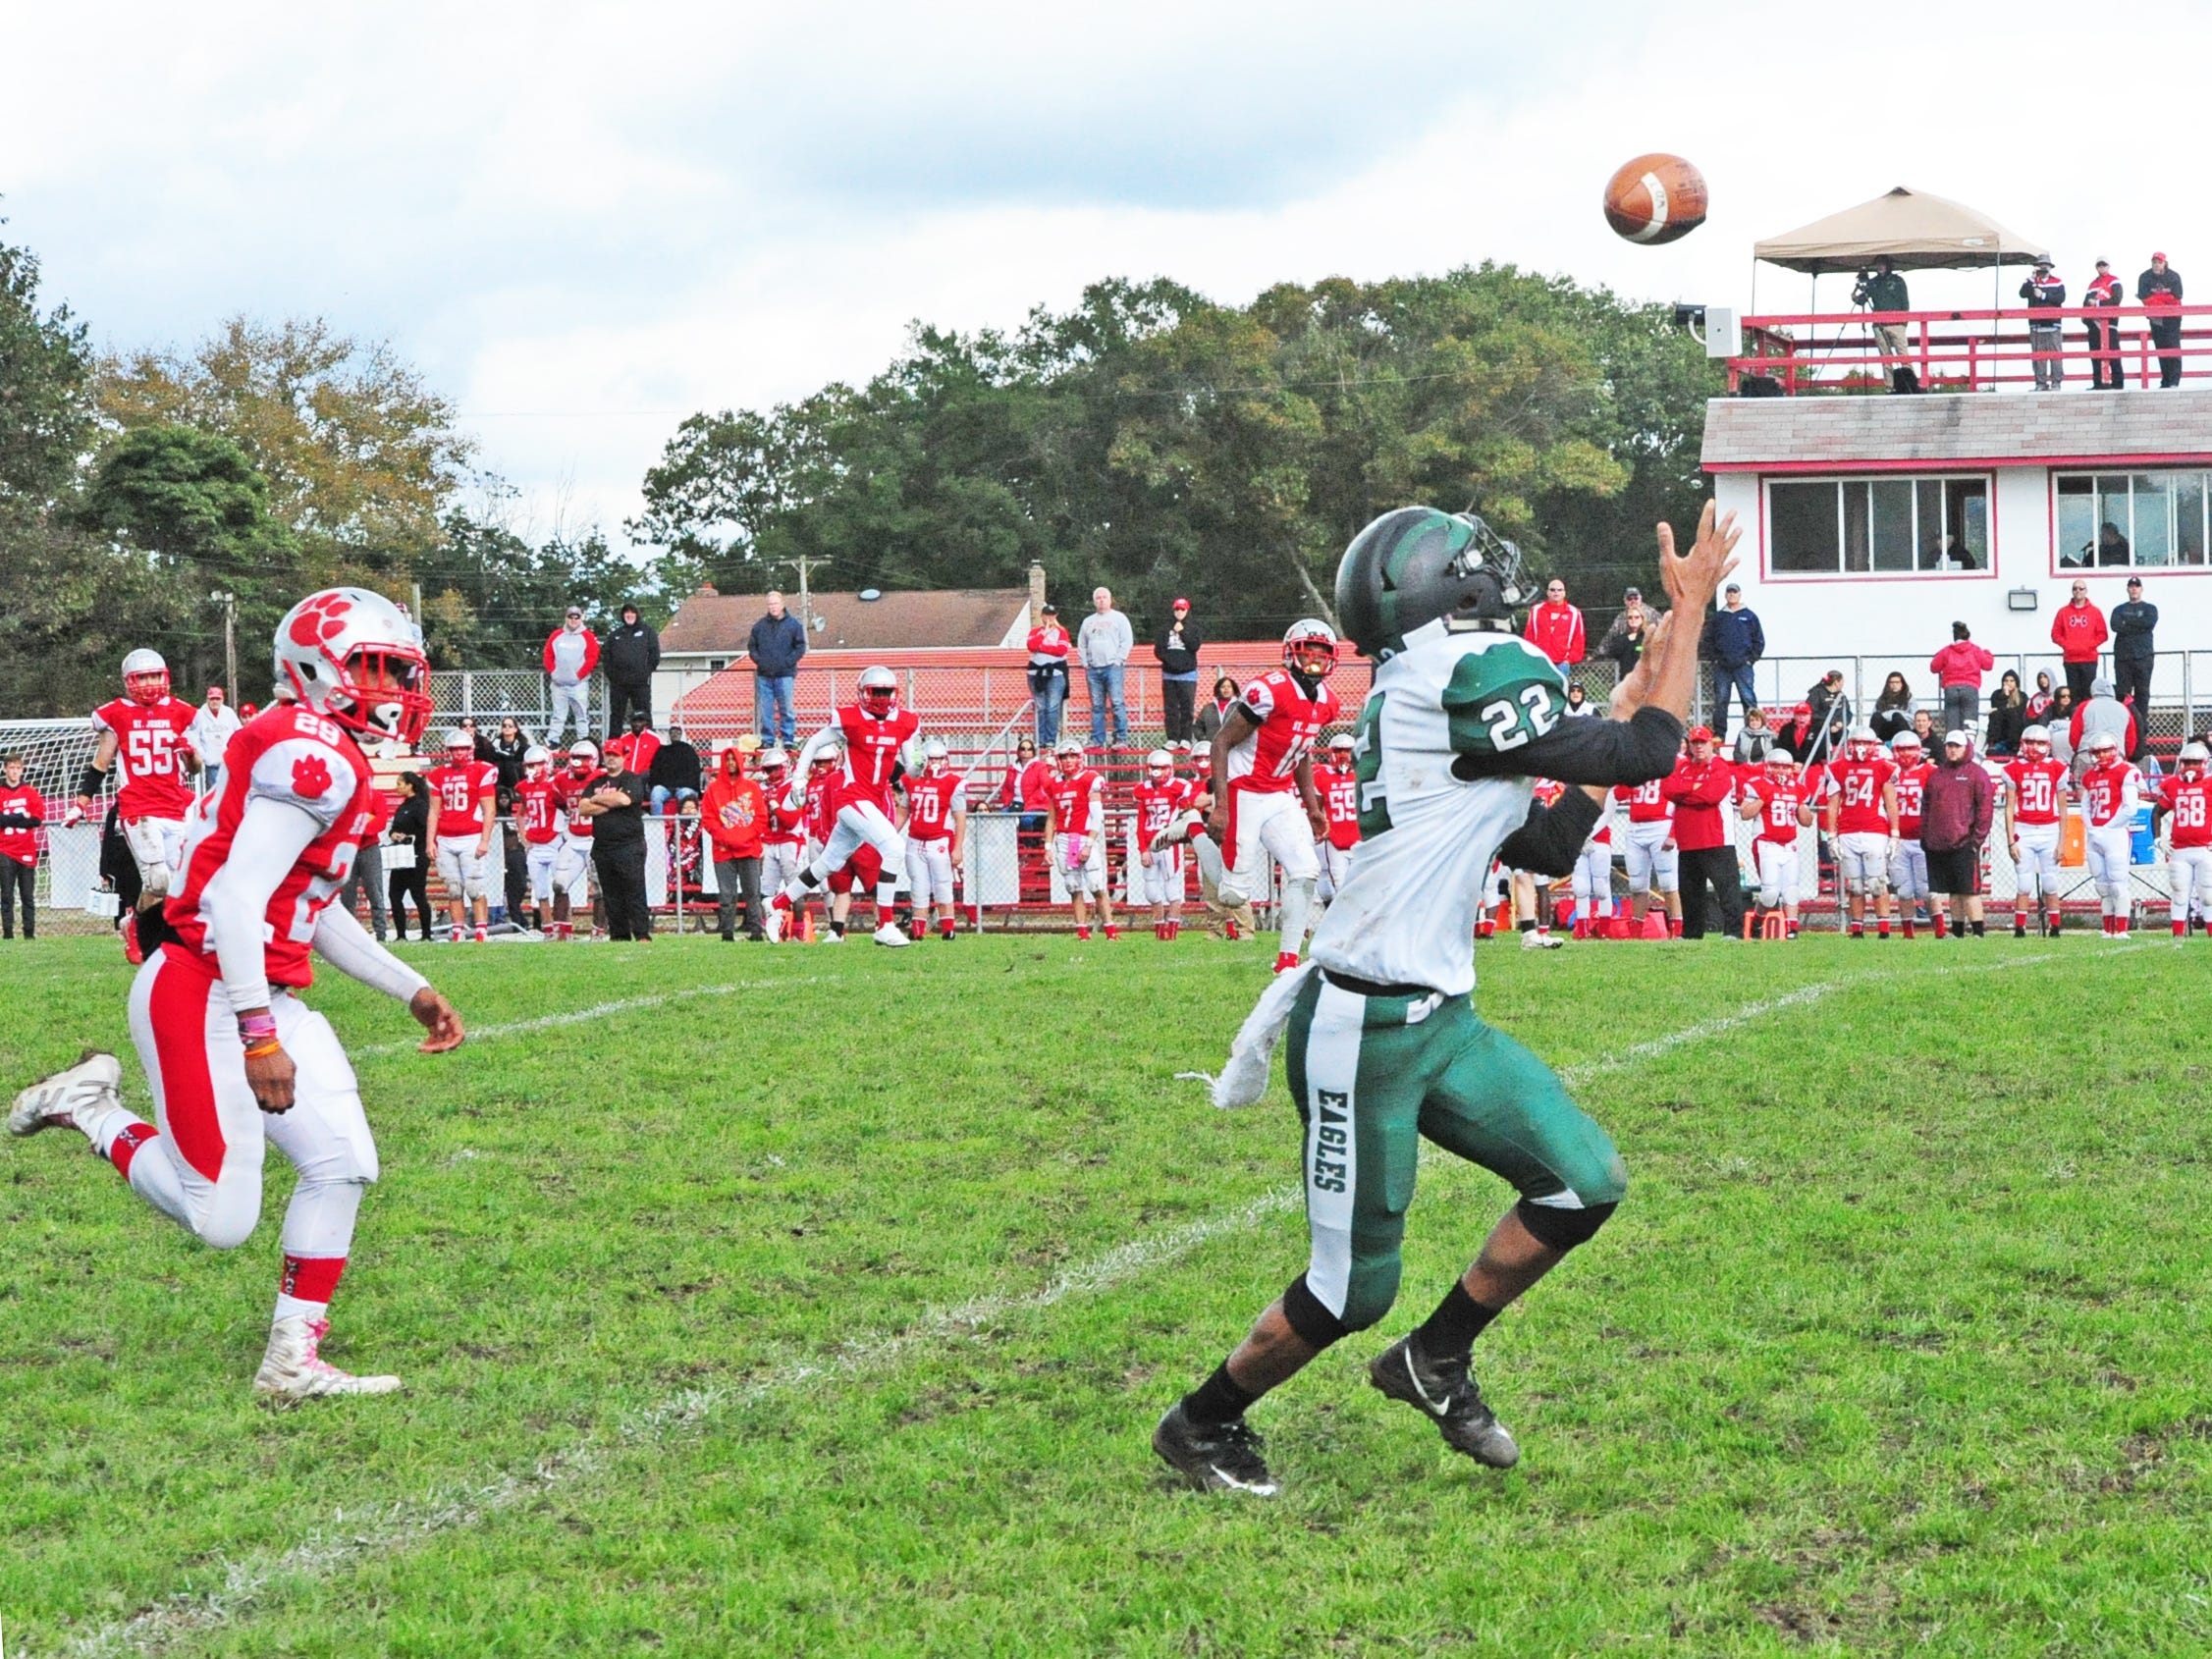 West Deptford's Donovan Stone prepares to haul in a long pass which he ran for a touchdown against St. Joseph in Hammonton on Saturday, October 13, 2018.